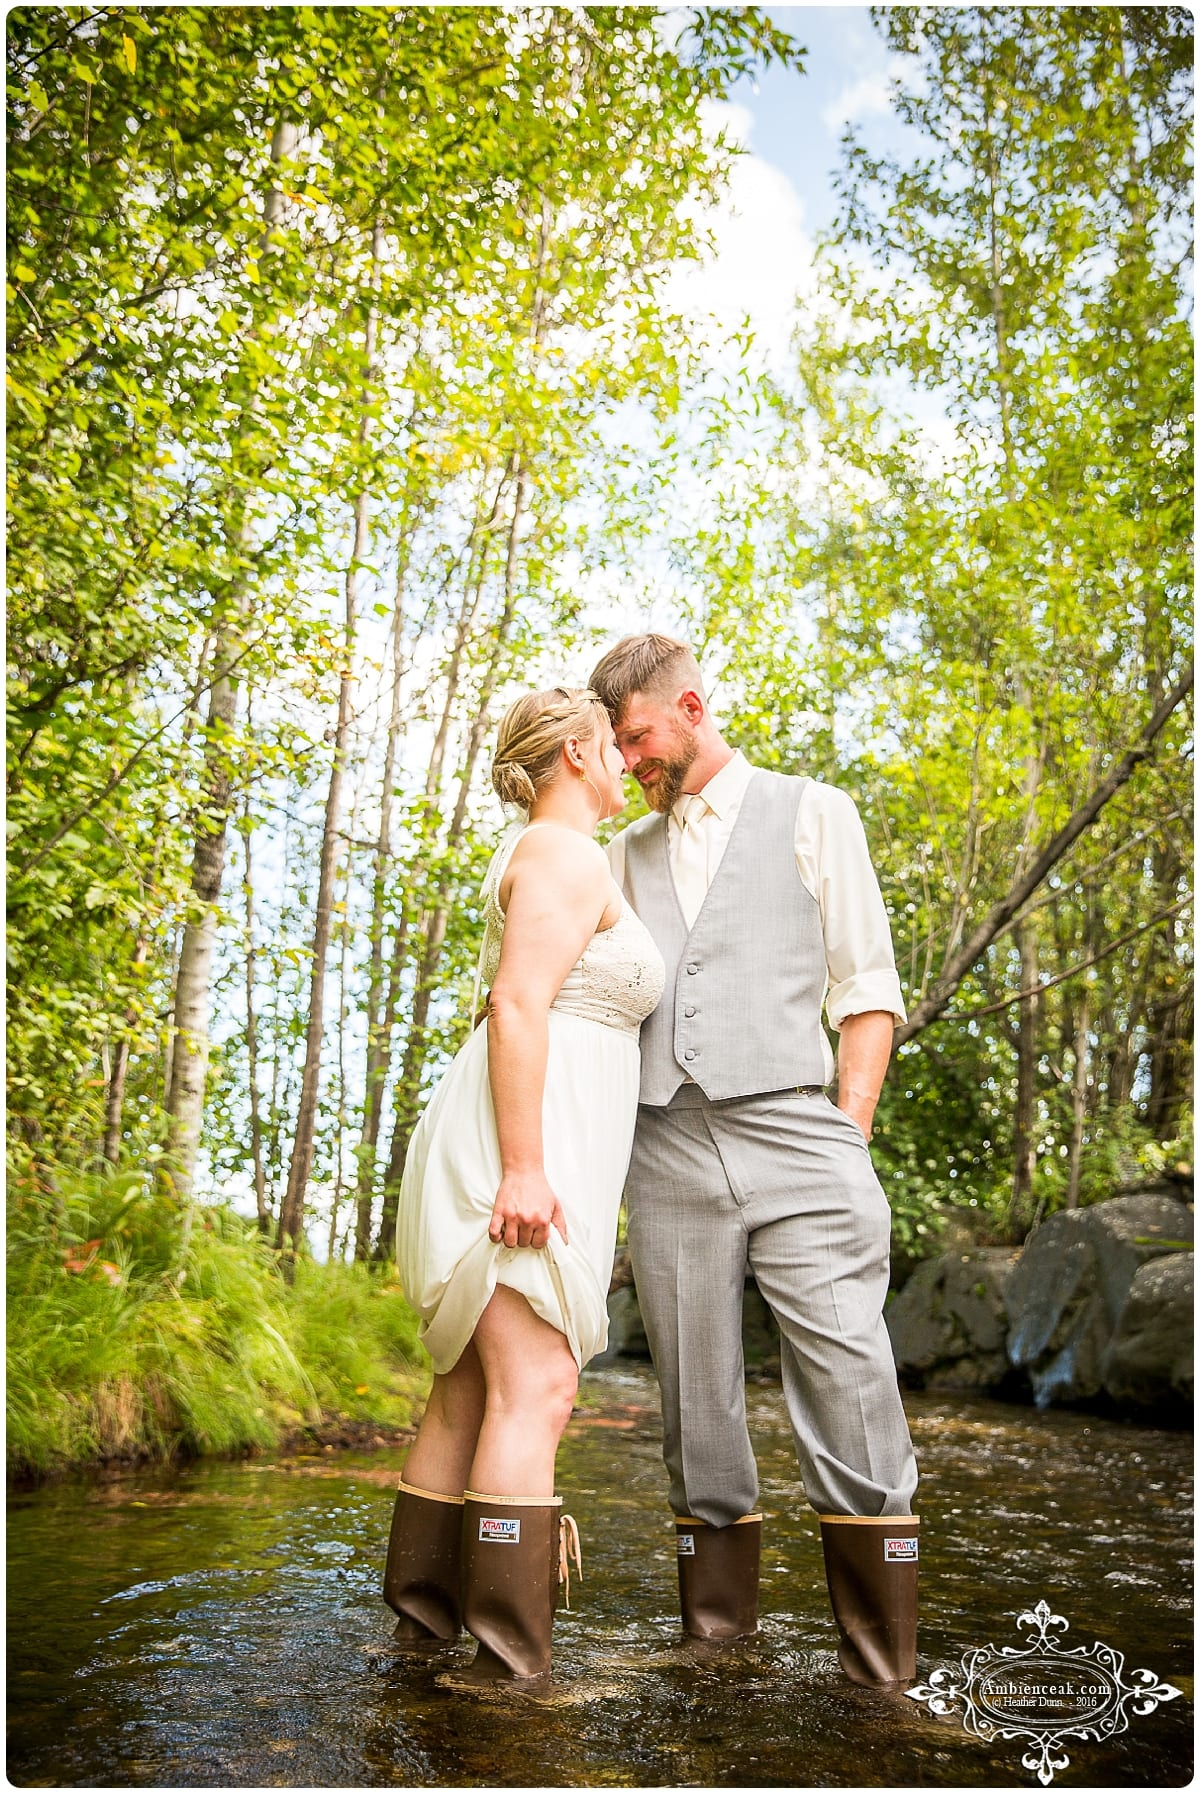 Ambience Photography,Heather Dunn,Photography in Alaska,Wasilla Alaska,Wasilla Alaska Portraits,